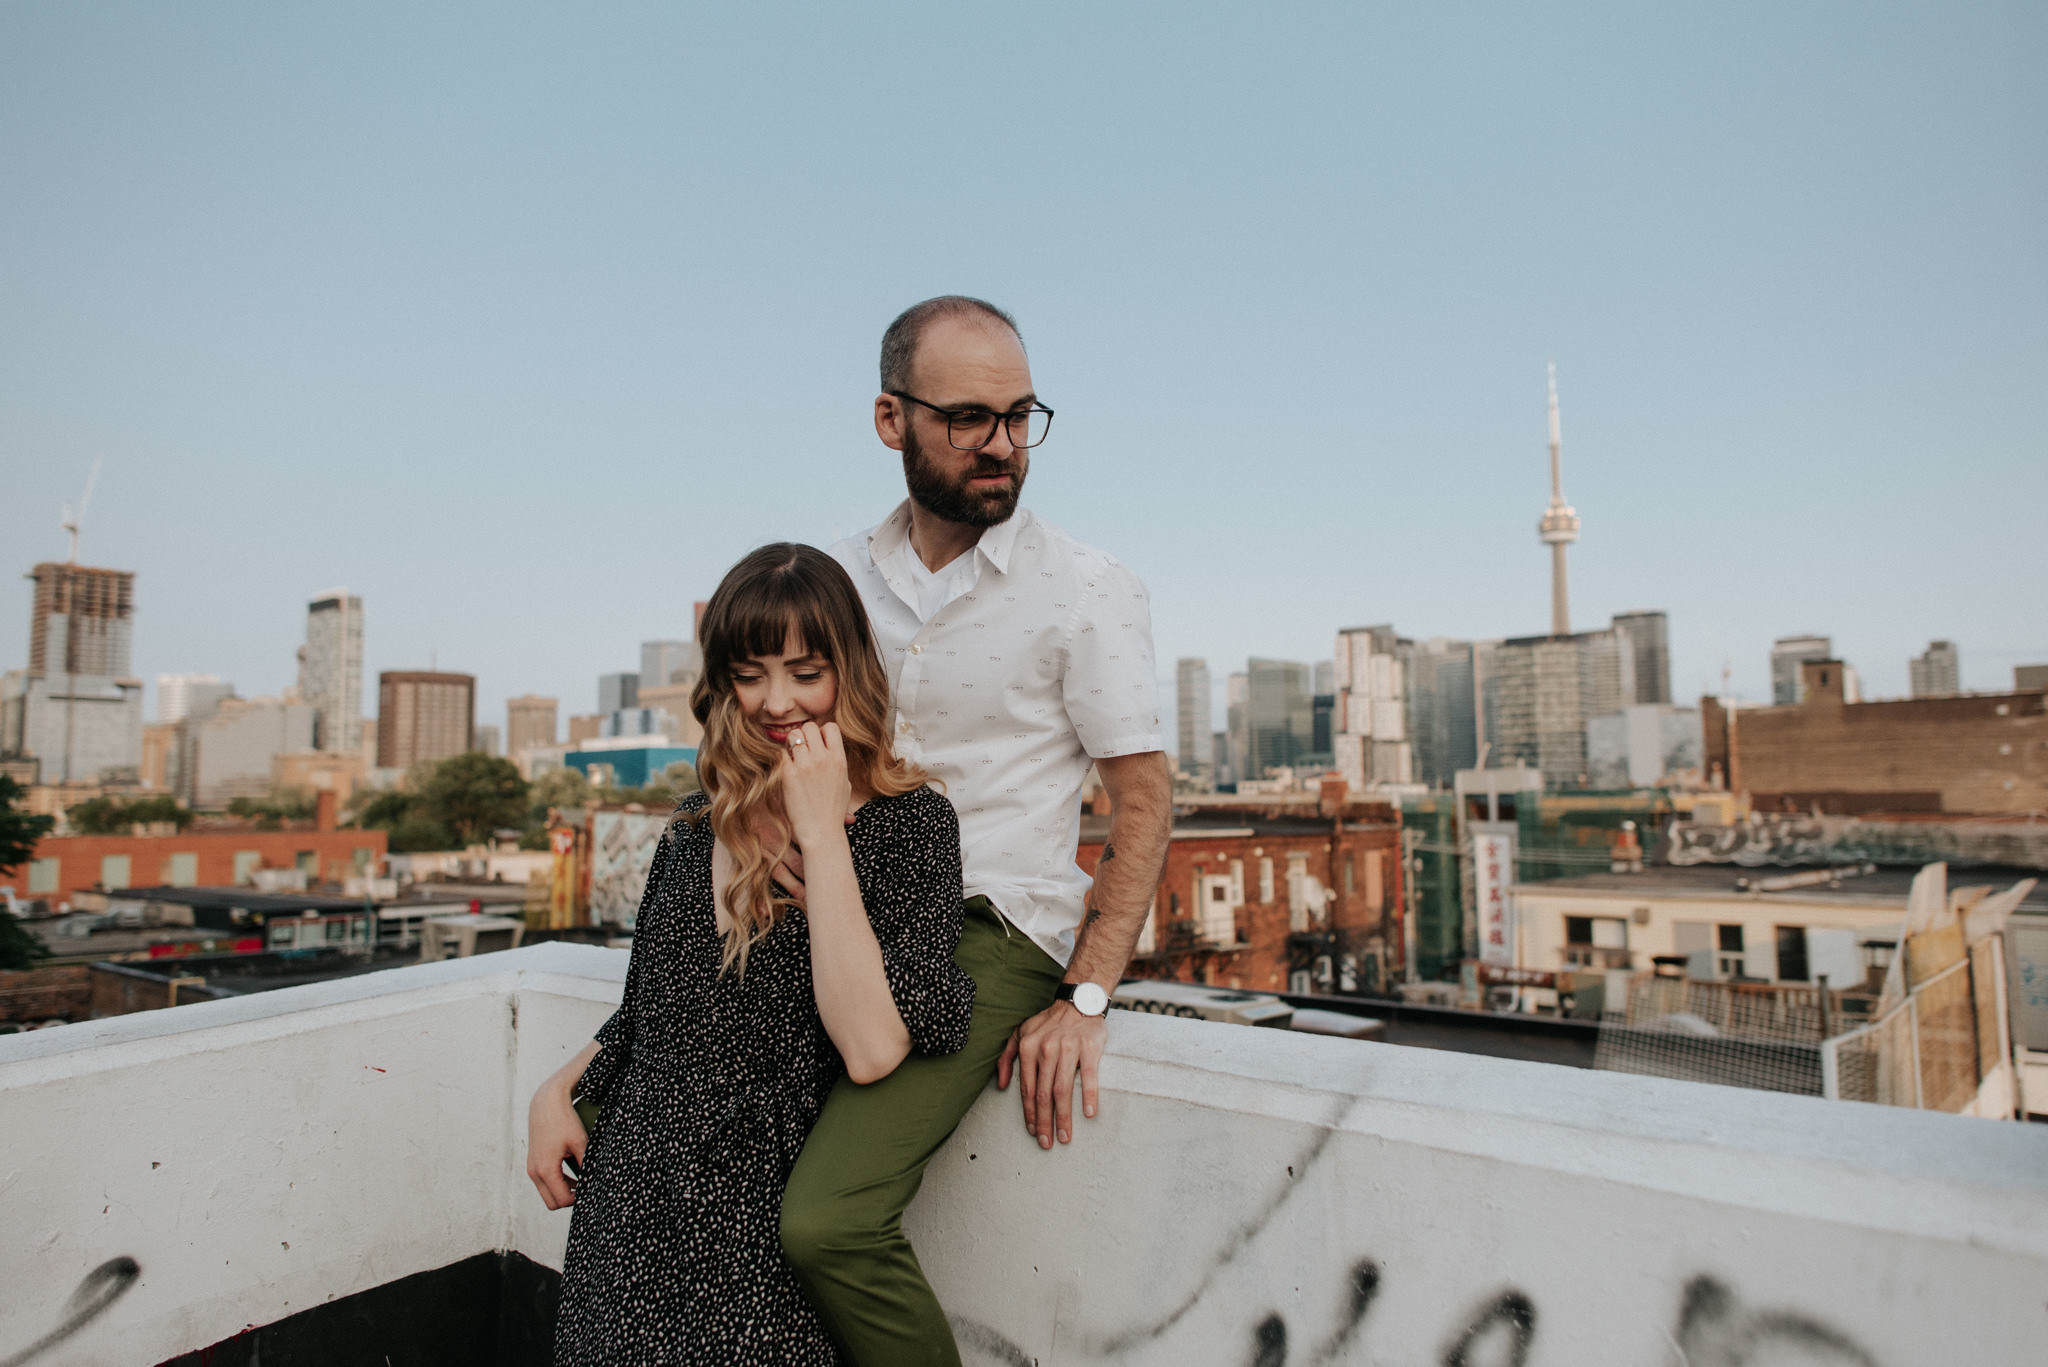 Couple on rooftop with Toronto skyline in background at sunset